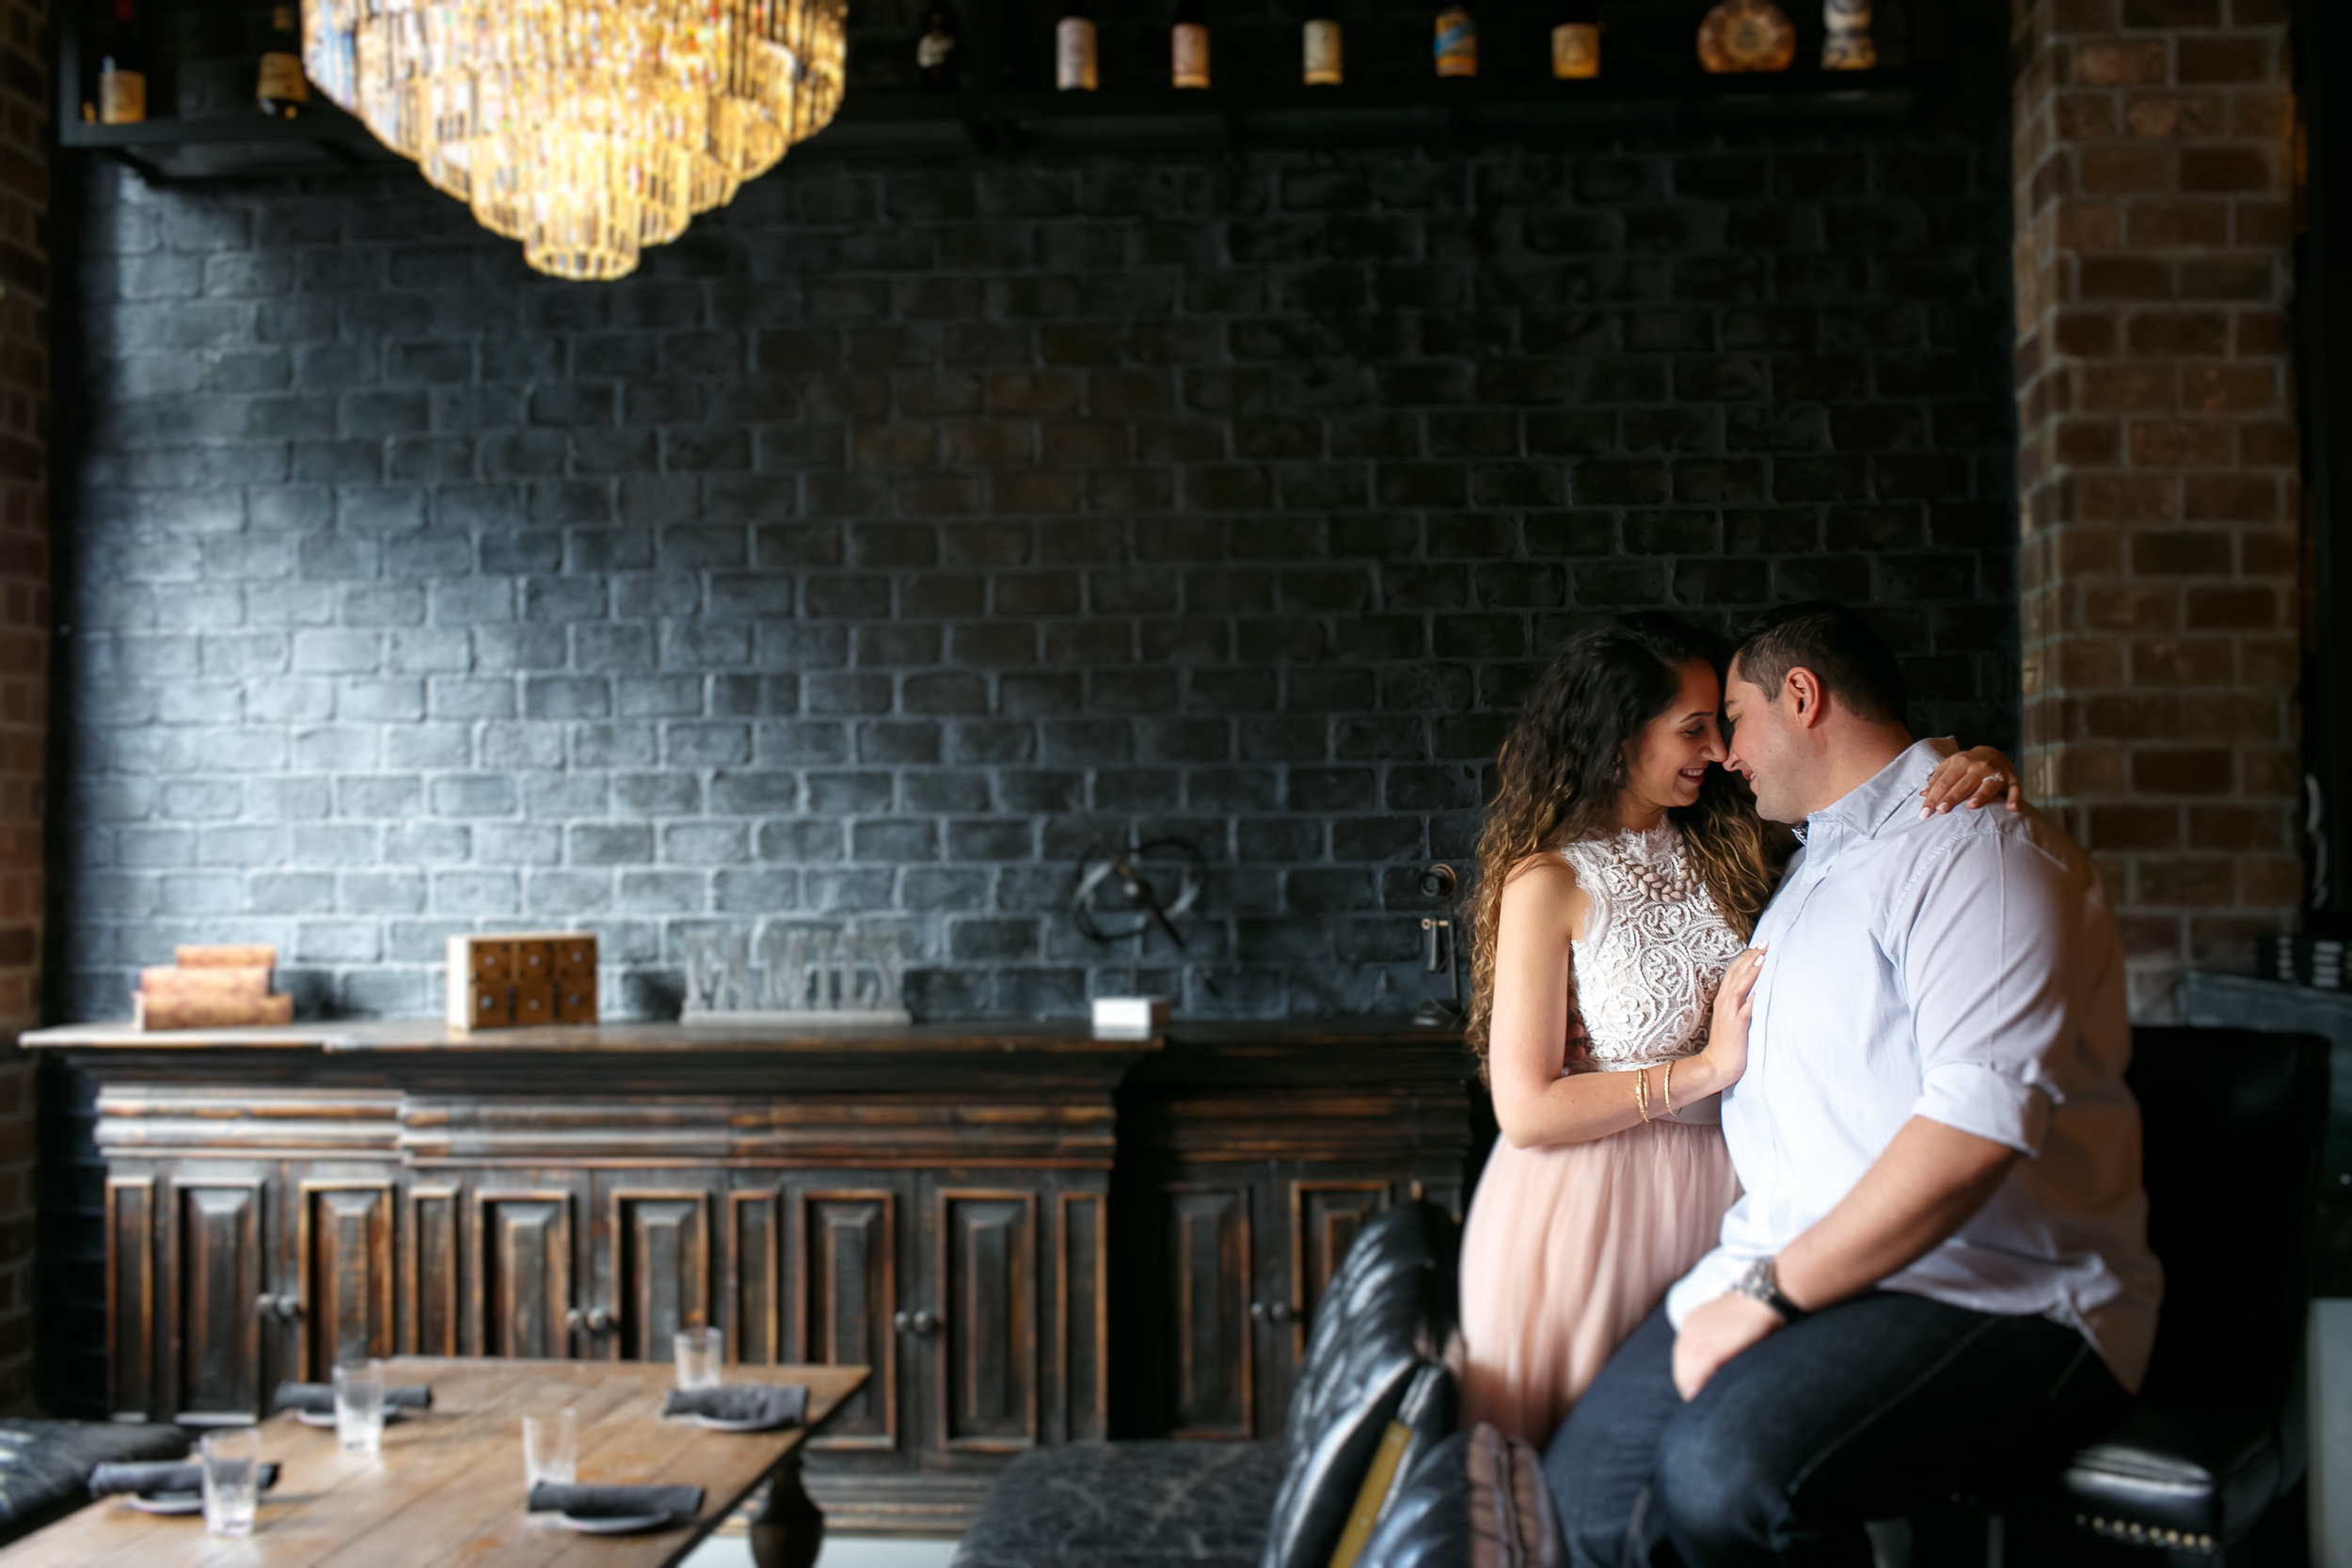 San-Diego-Gaslamp-Quarter-Engagement-Session.jpg